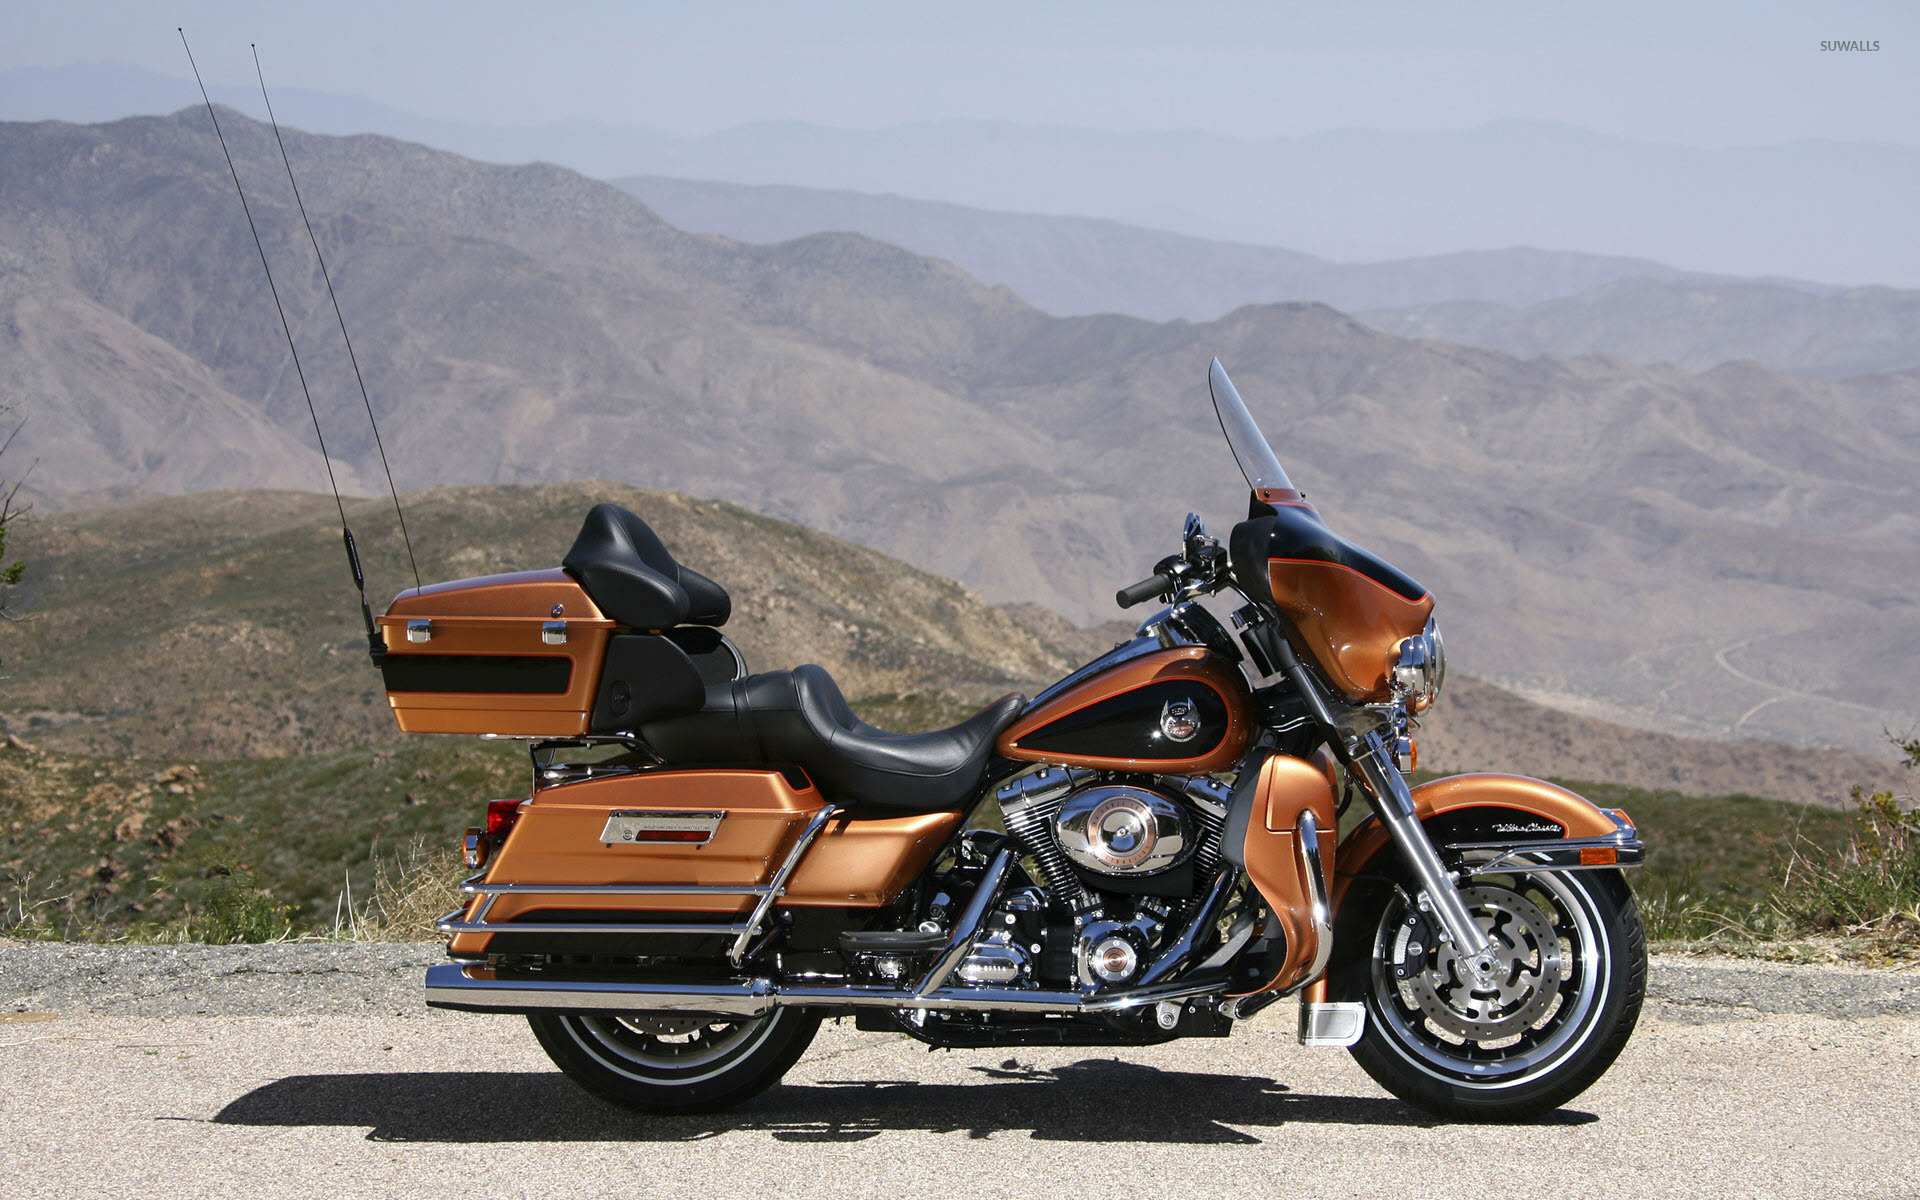 Harley Davidson Electra Glide Ultra Classic Wallpaper Motorcycle